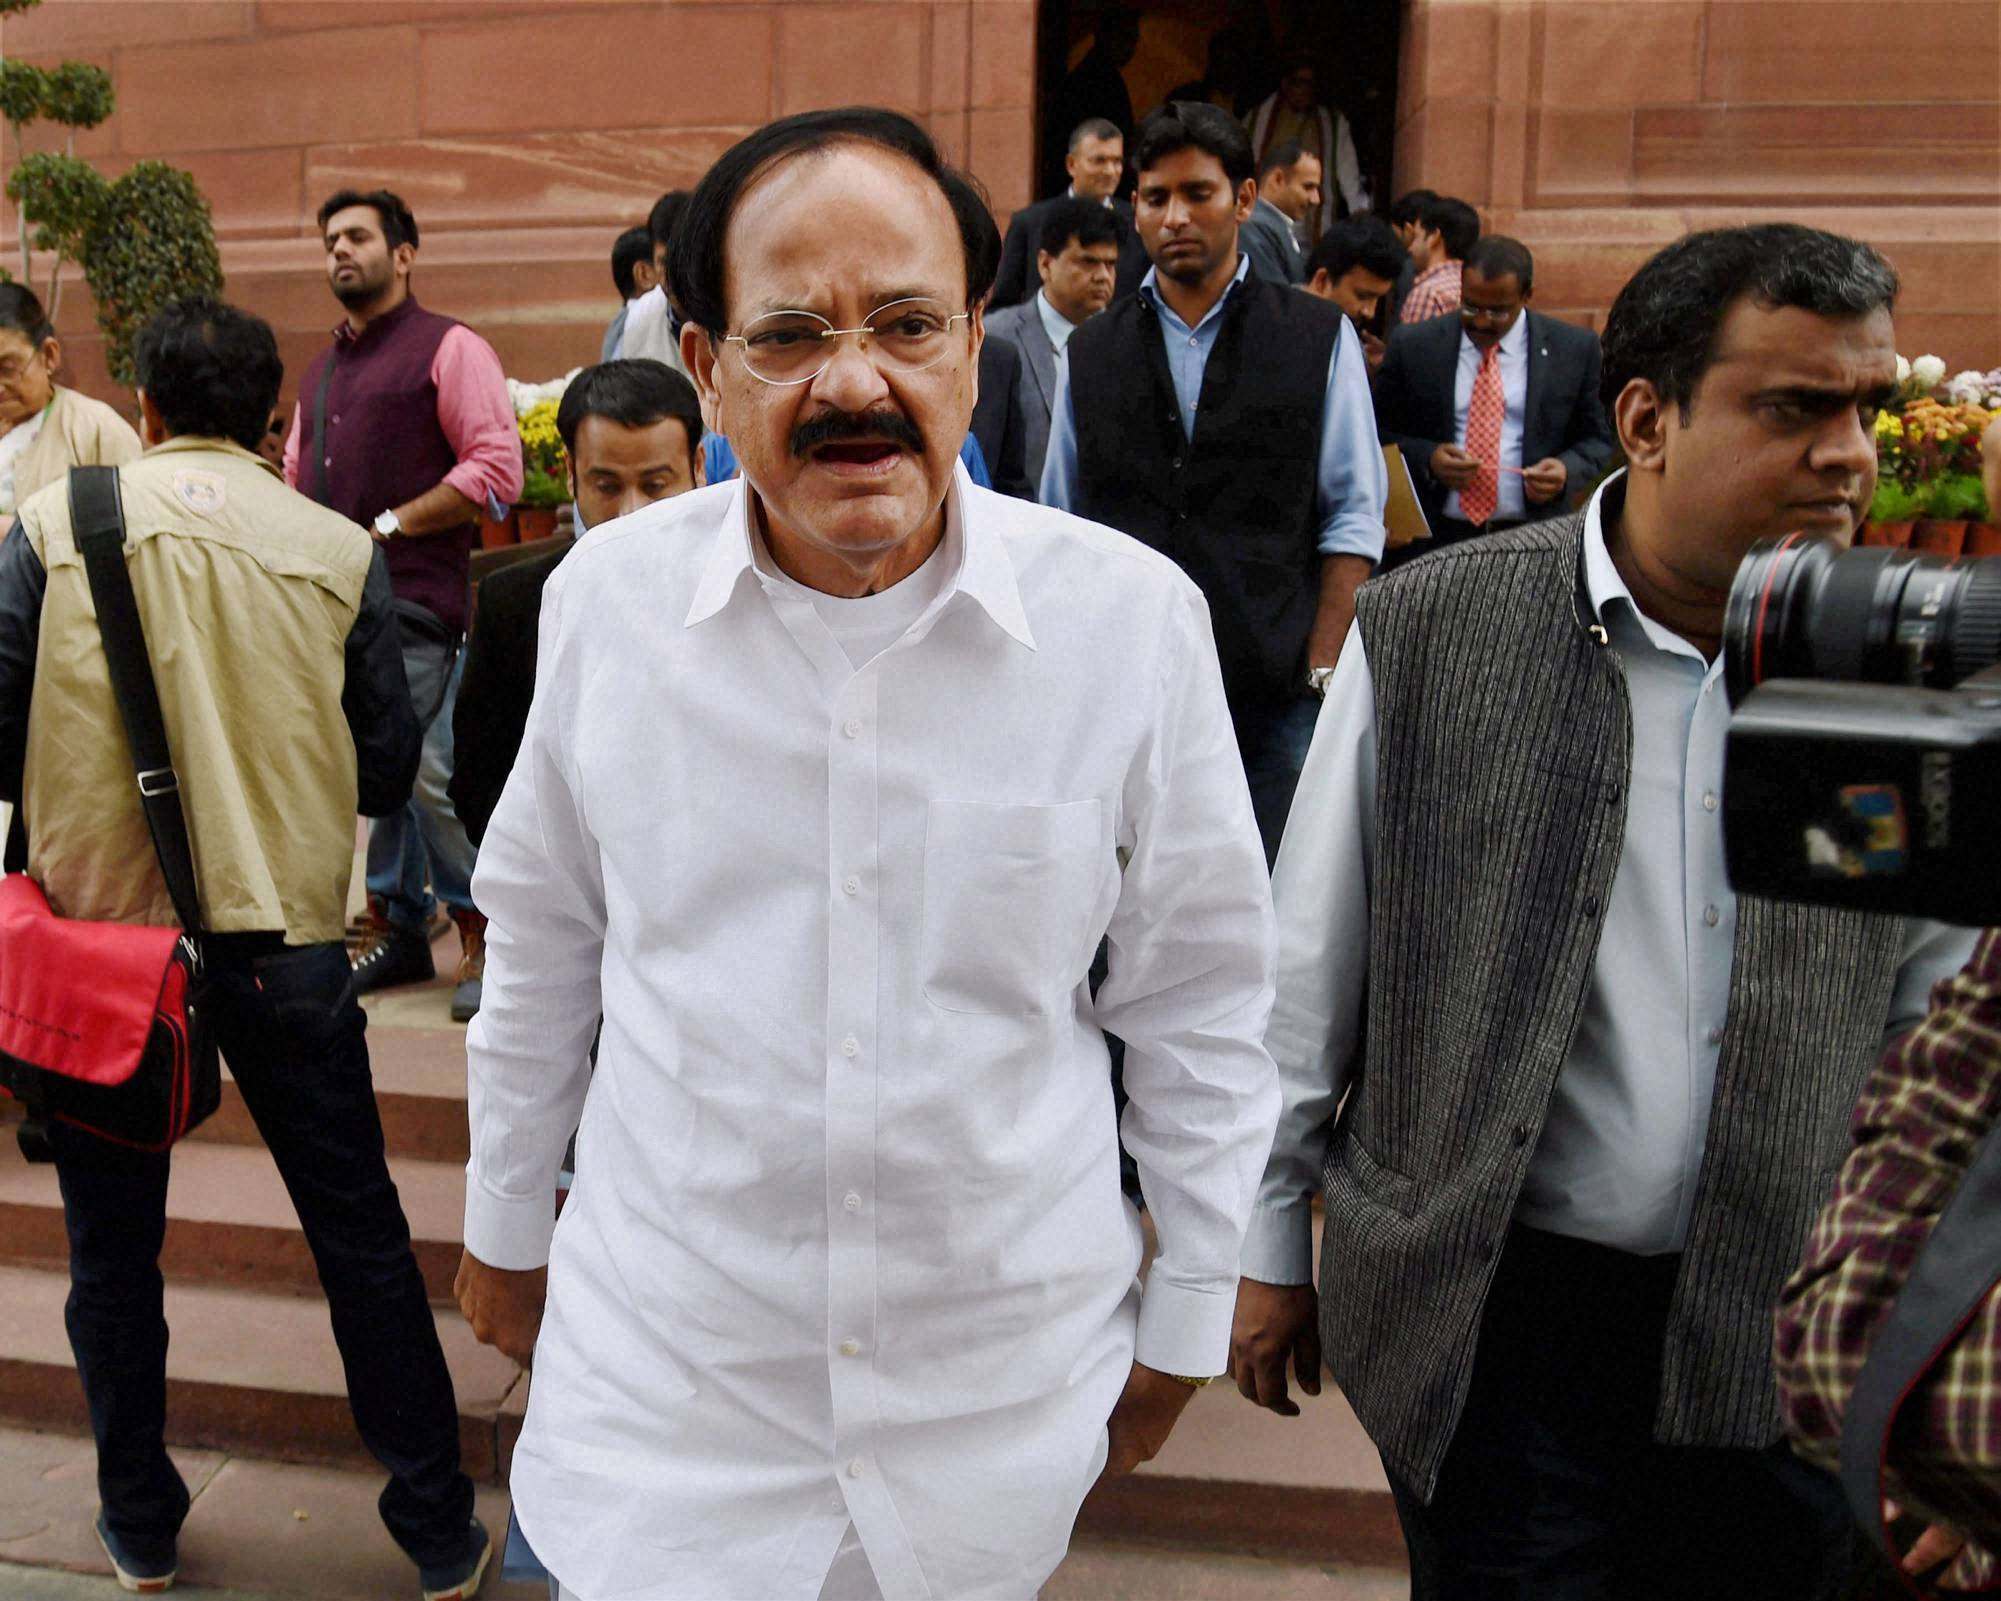 No further changes will be incorporated in Land acquisition bill, as indicated by center and Venkiah Naidu